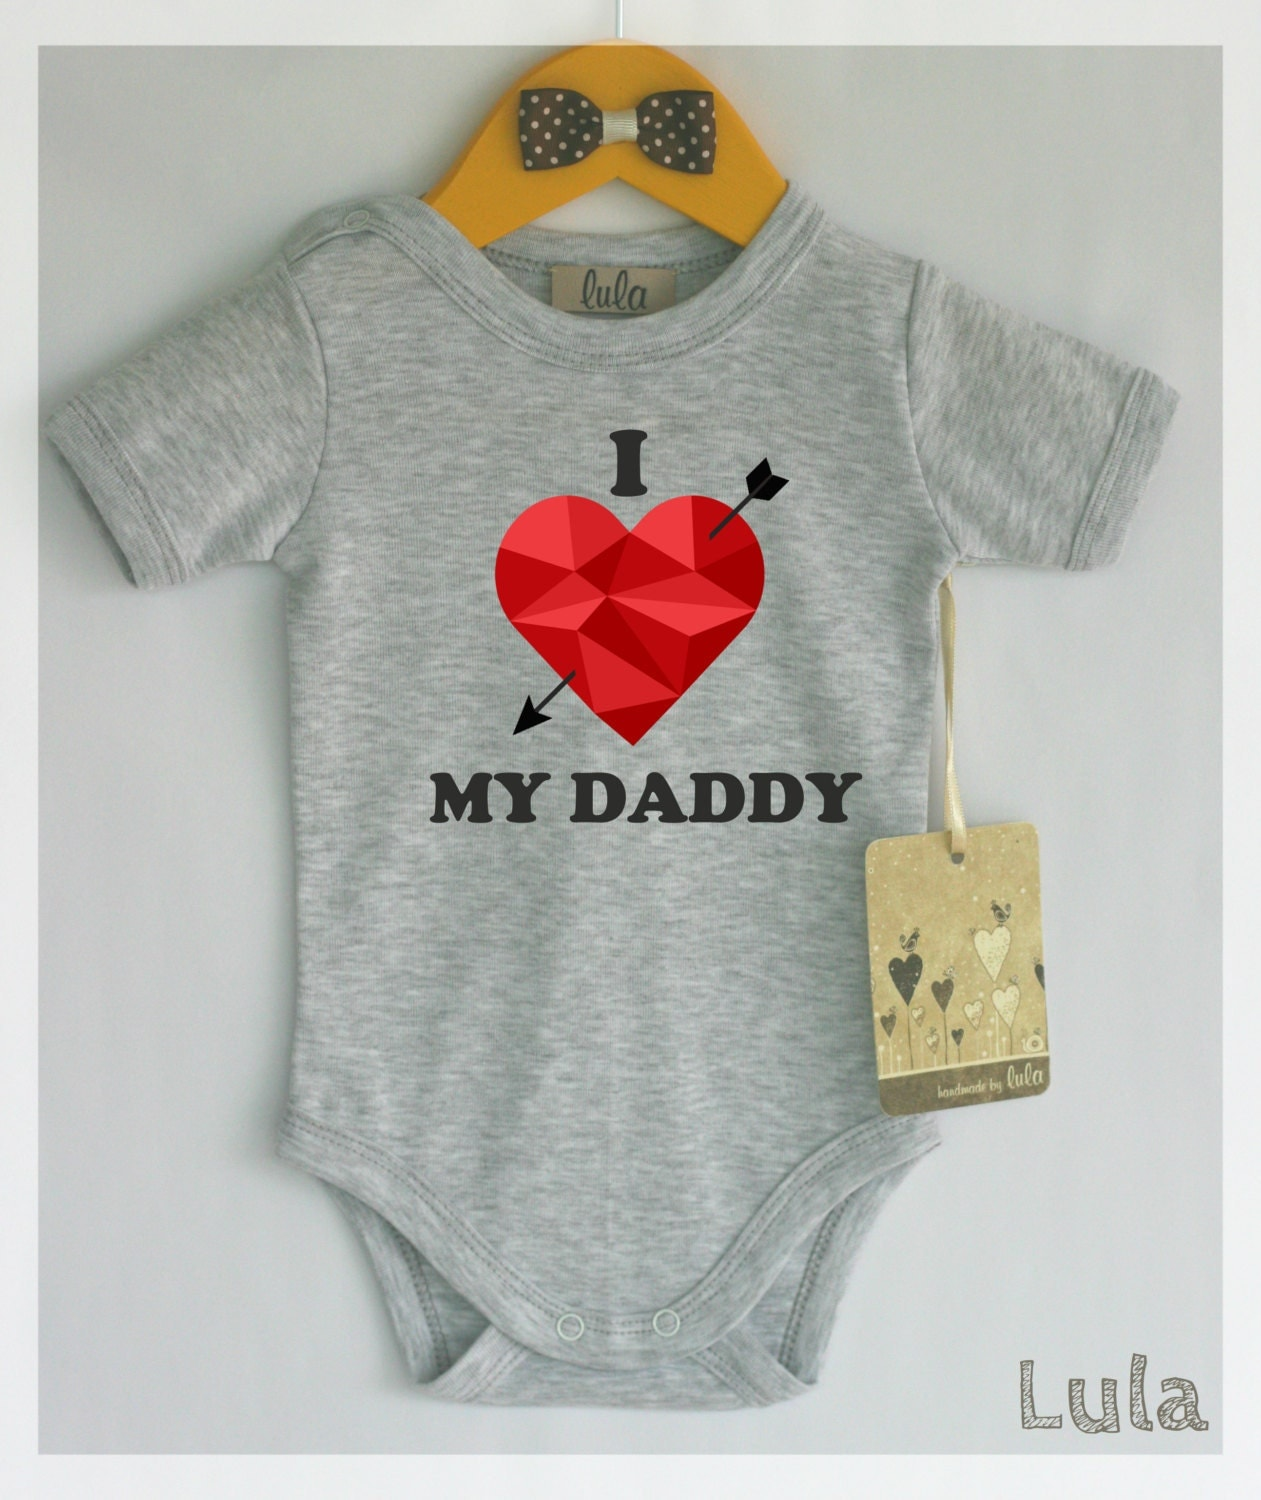 Baby Clothing: Free Shipping on orders over $45 at 0549sahibi.tk - Your Online Baby Clothing Store! I Hooked Daddy's Heart Cute Baby Bodysuit Infant Bodysuit Father's Day Gift Idea. 17 Reviews. 2 Day Delivery. Quick View $ 99 - $ 99 Rocket Bug 'Dinosaur Love' Baby Bodysuit. 1 Review. SALE. Quick View. Sale $ 9.